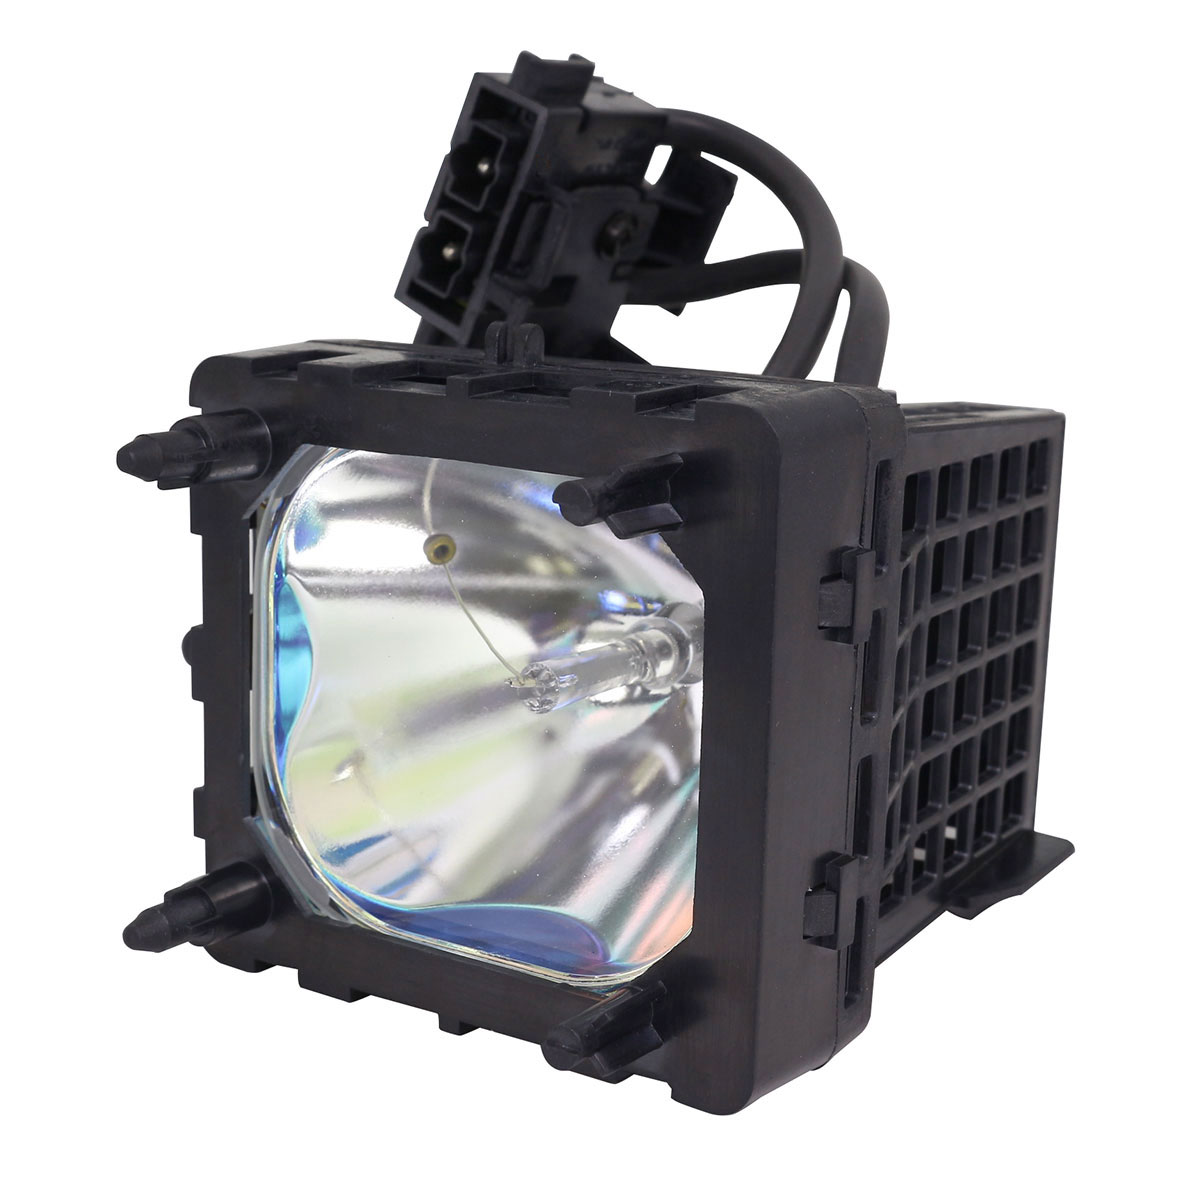 Details About Compatible Kds 60a3000 Kds60a3000 Replacement Projection Lamp For Sony Tv